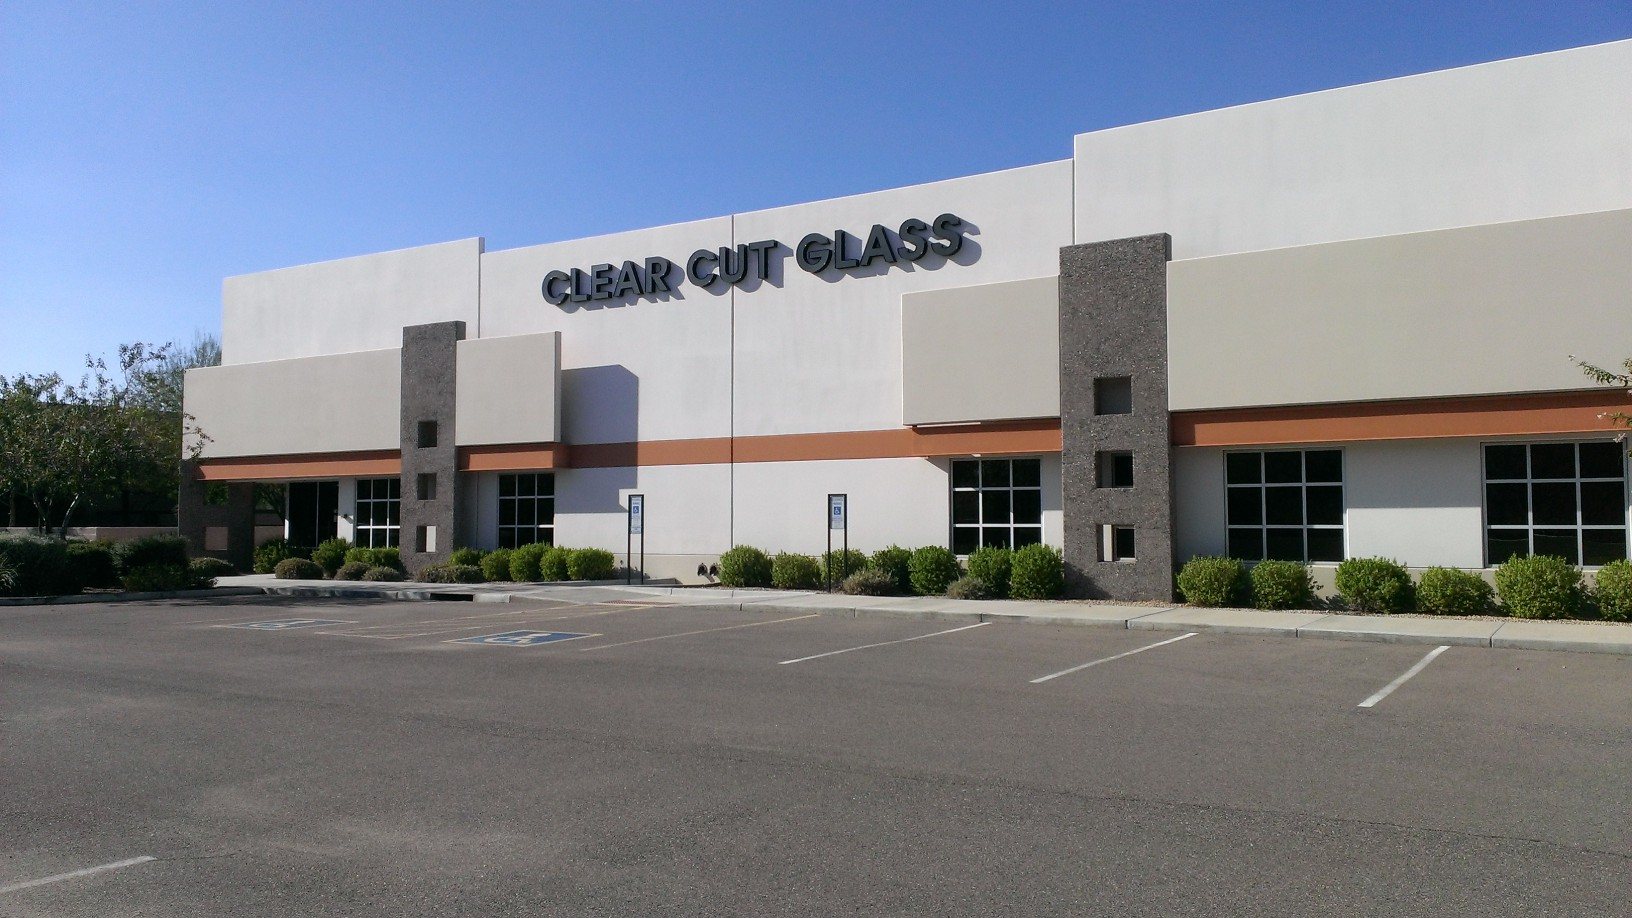 Clear Cut Glass Glendale Az